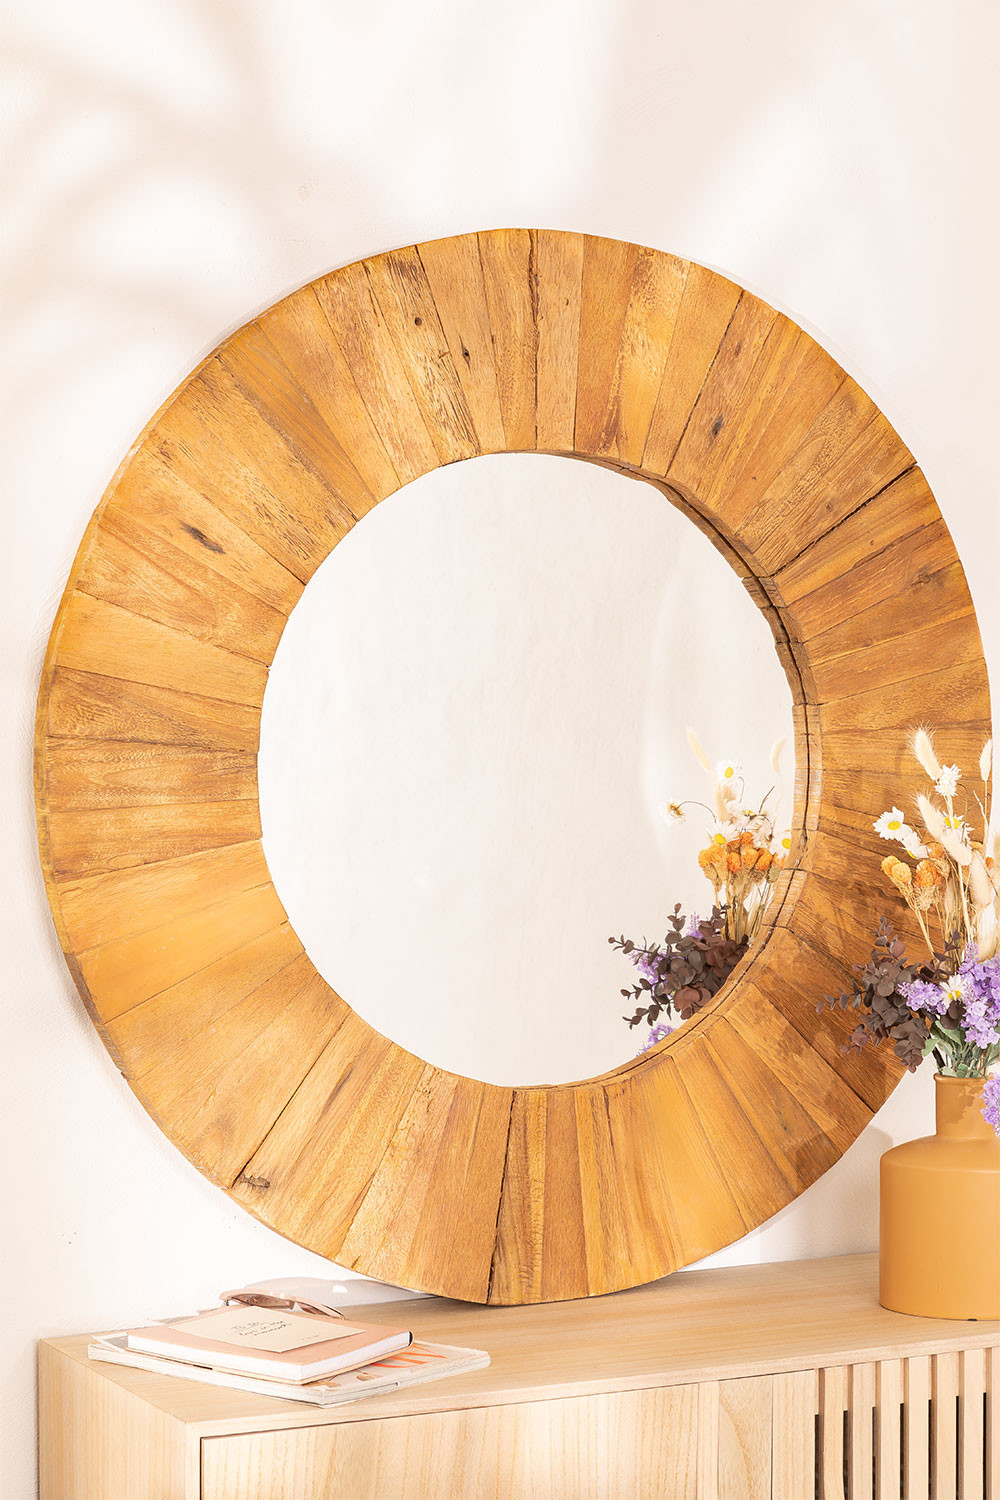 Round Wall Mirror in Recycled Wood (Ø100 cm) Rand, gallery image 1